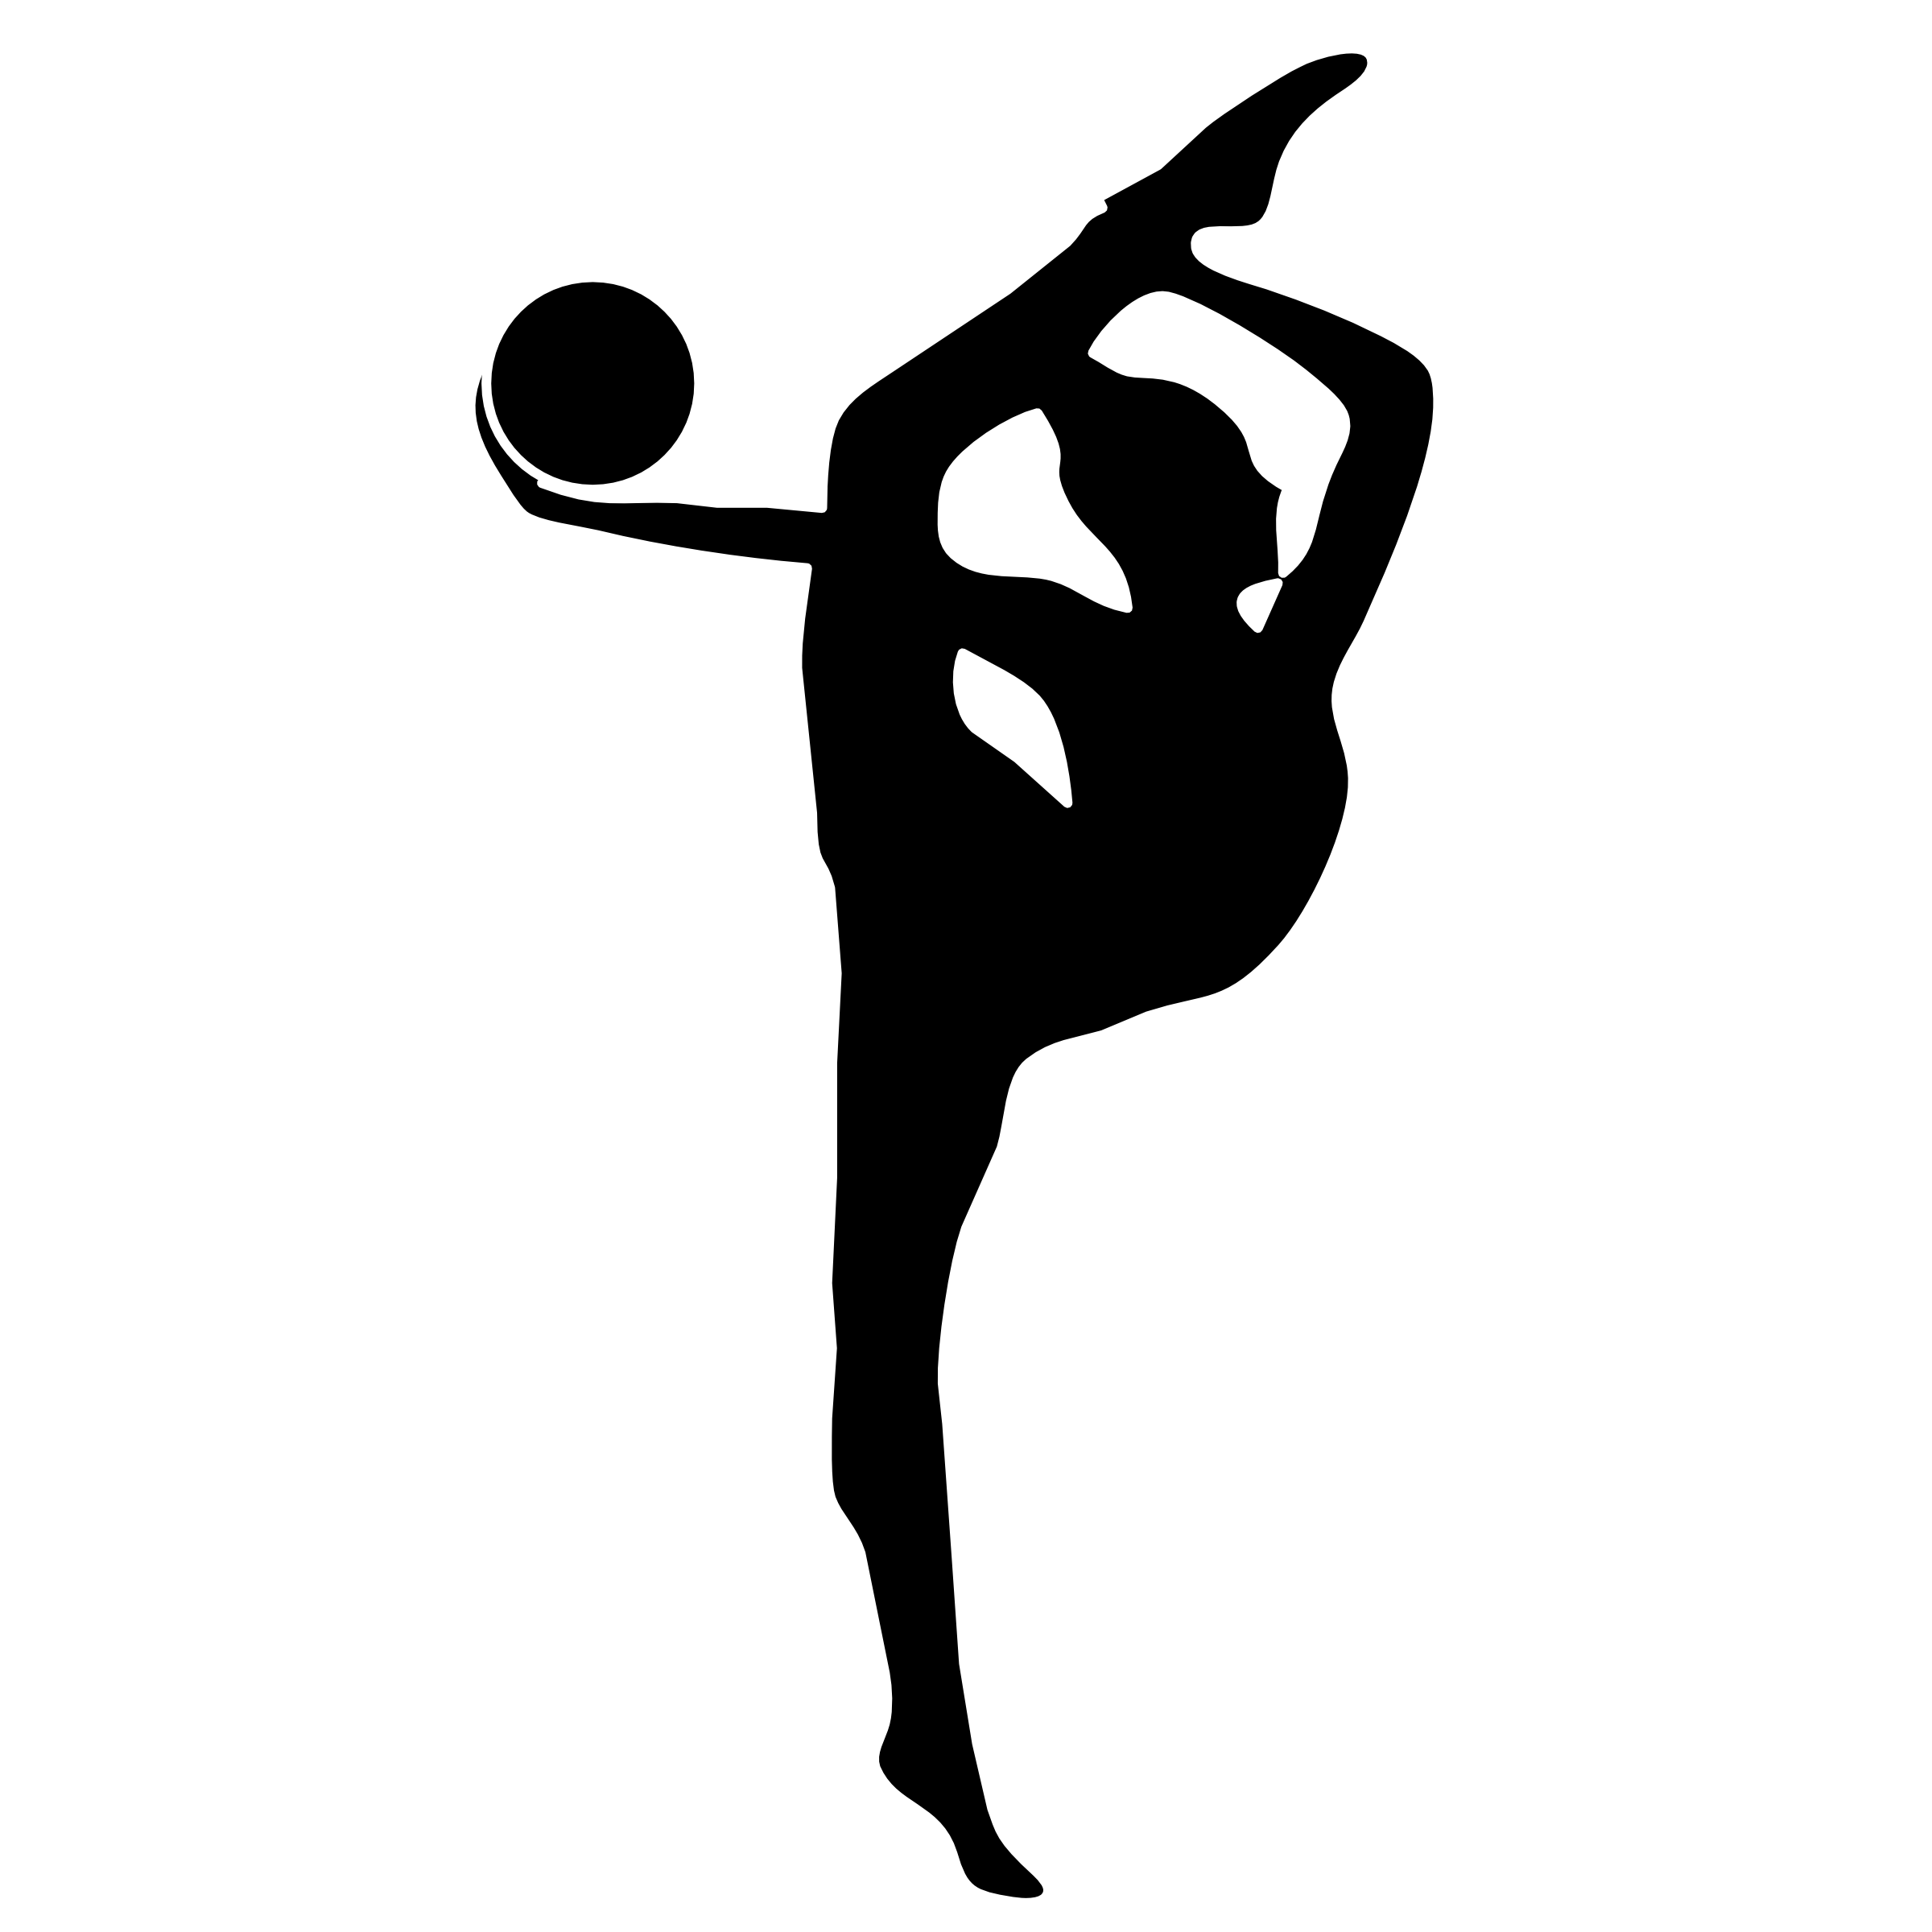 Free Gymnastics Silhouette Png, Download Free Clip Art, Free.